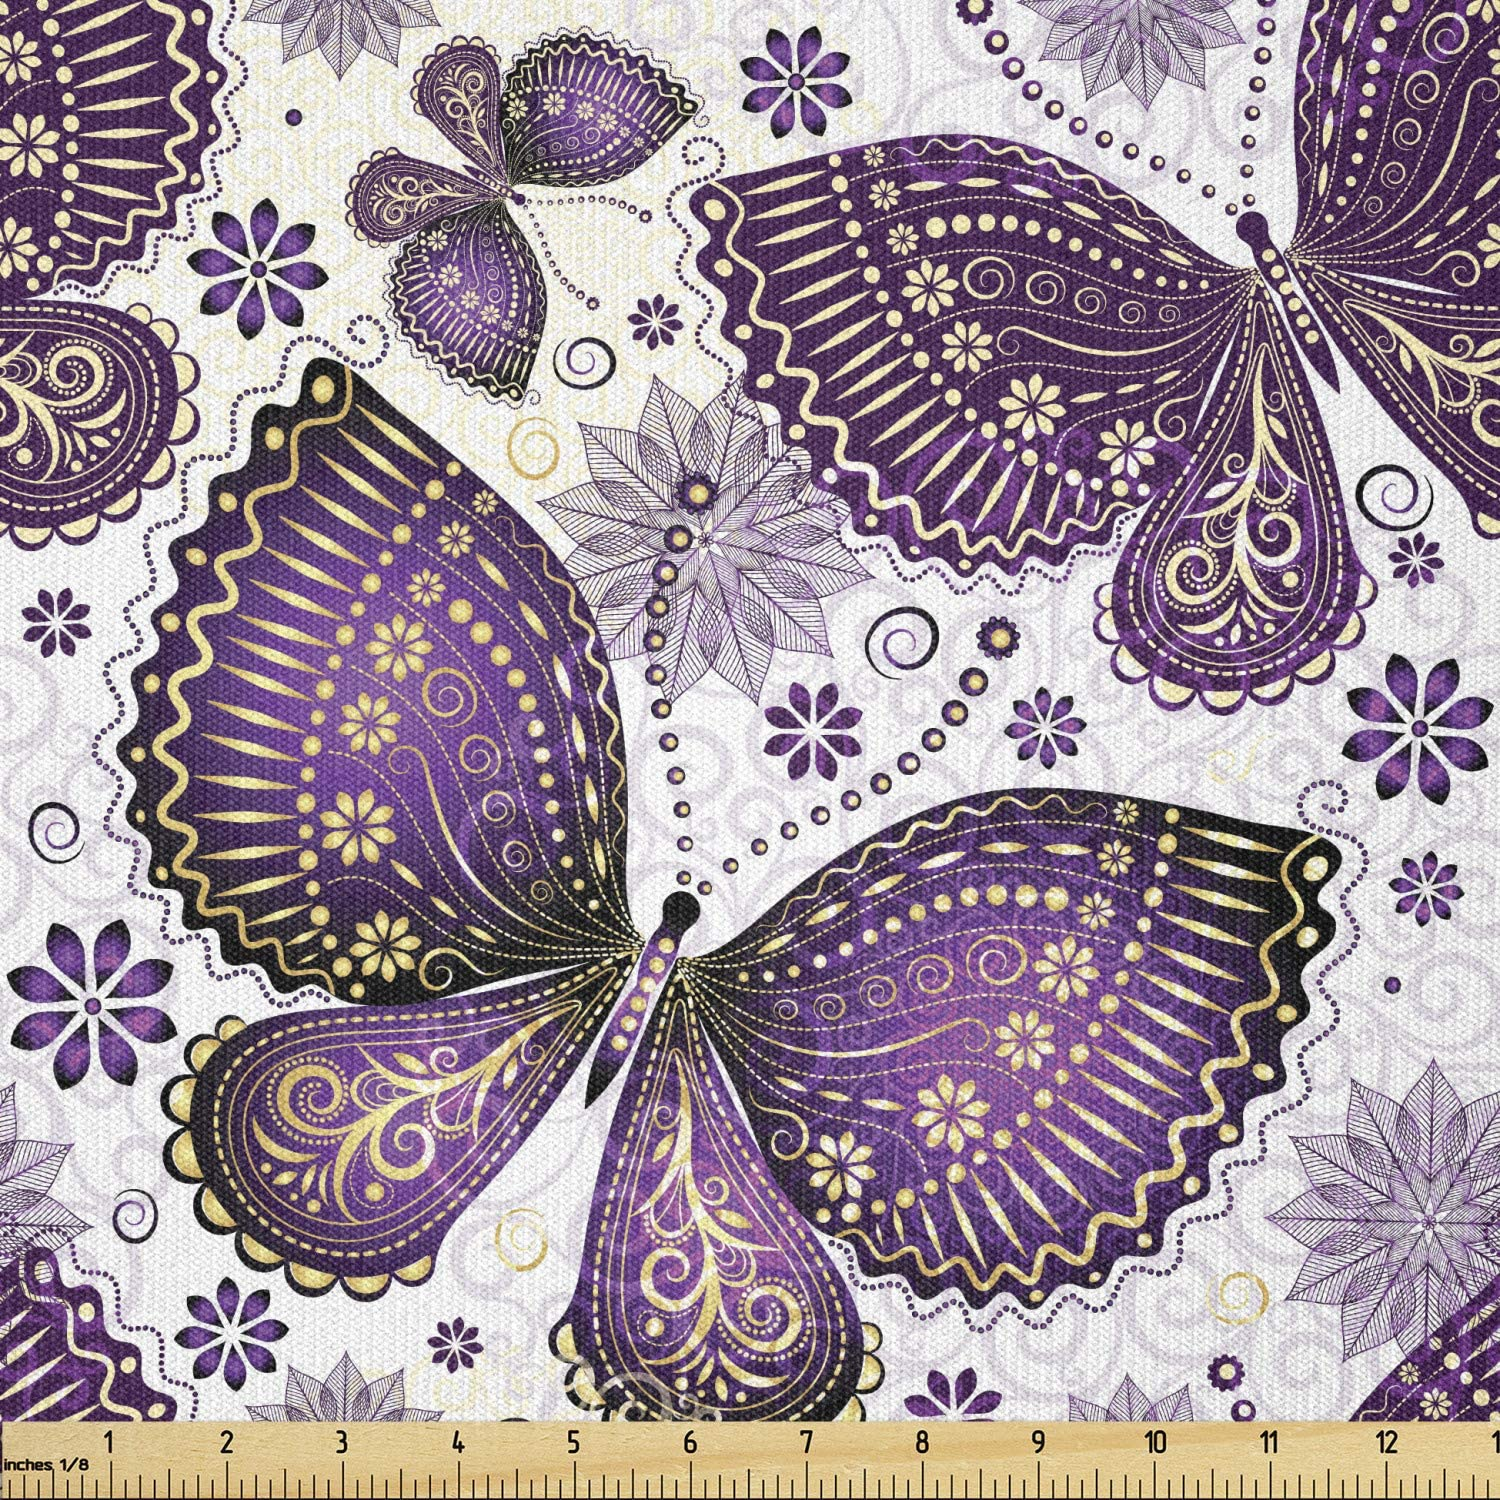 Ambesonne Natural Fabric by The Yard, Butterflies with Paisley Motif on Wings Flowers Art Print, Stretch Knit Fabric for Clothing Sewing and Arts Crafts, 1 Yard, Purple White